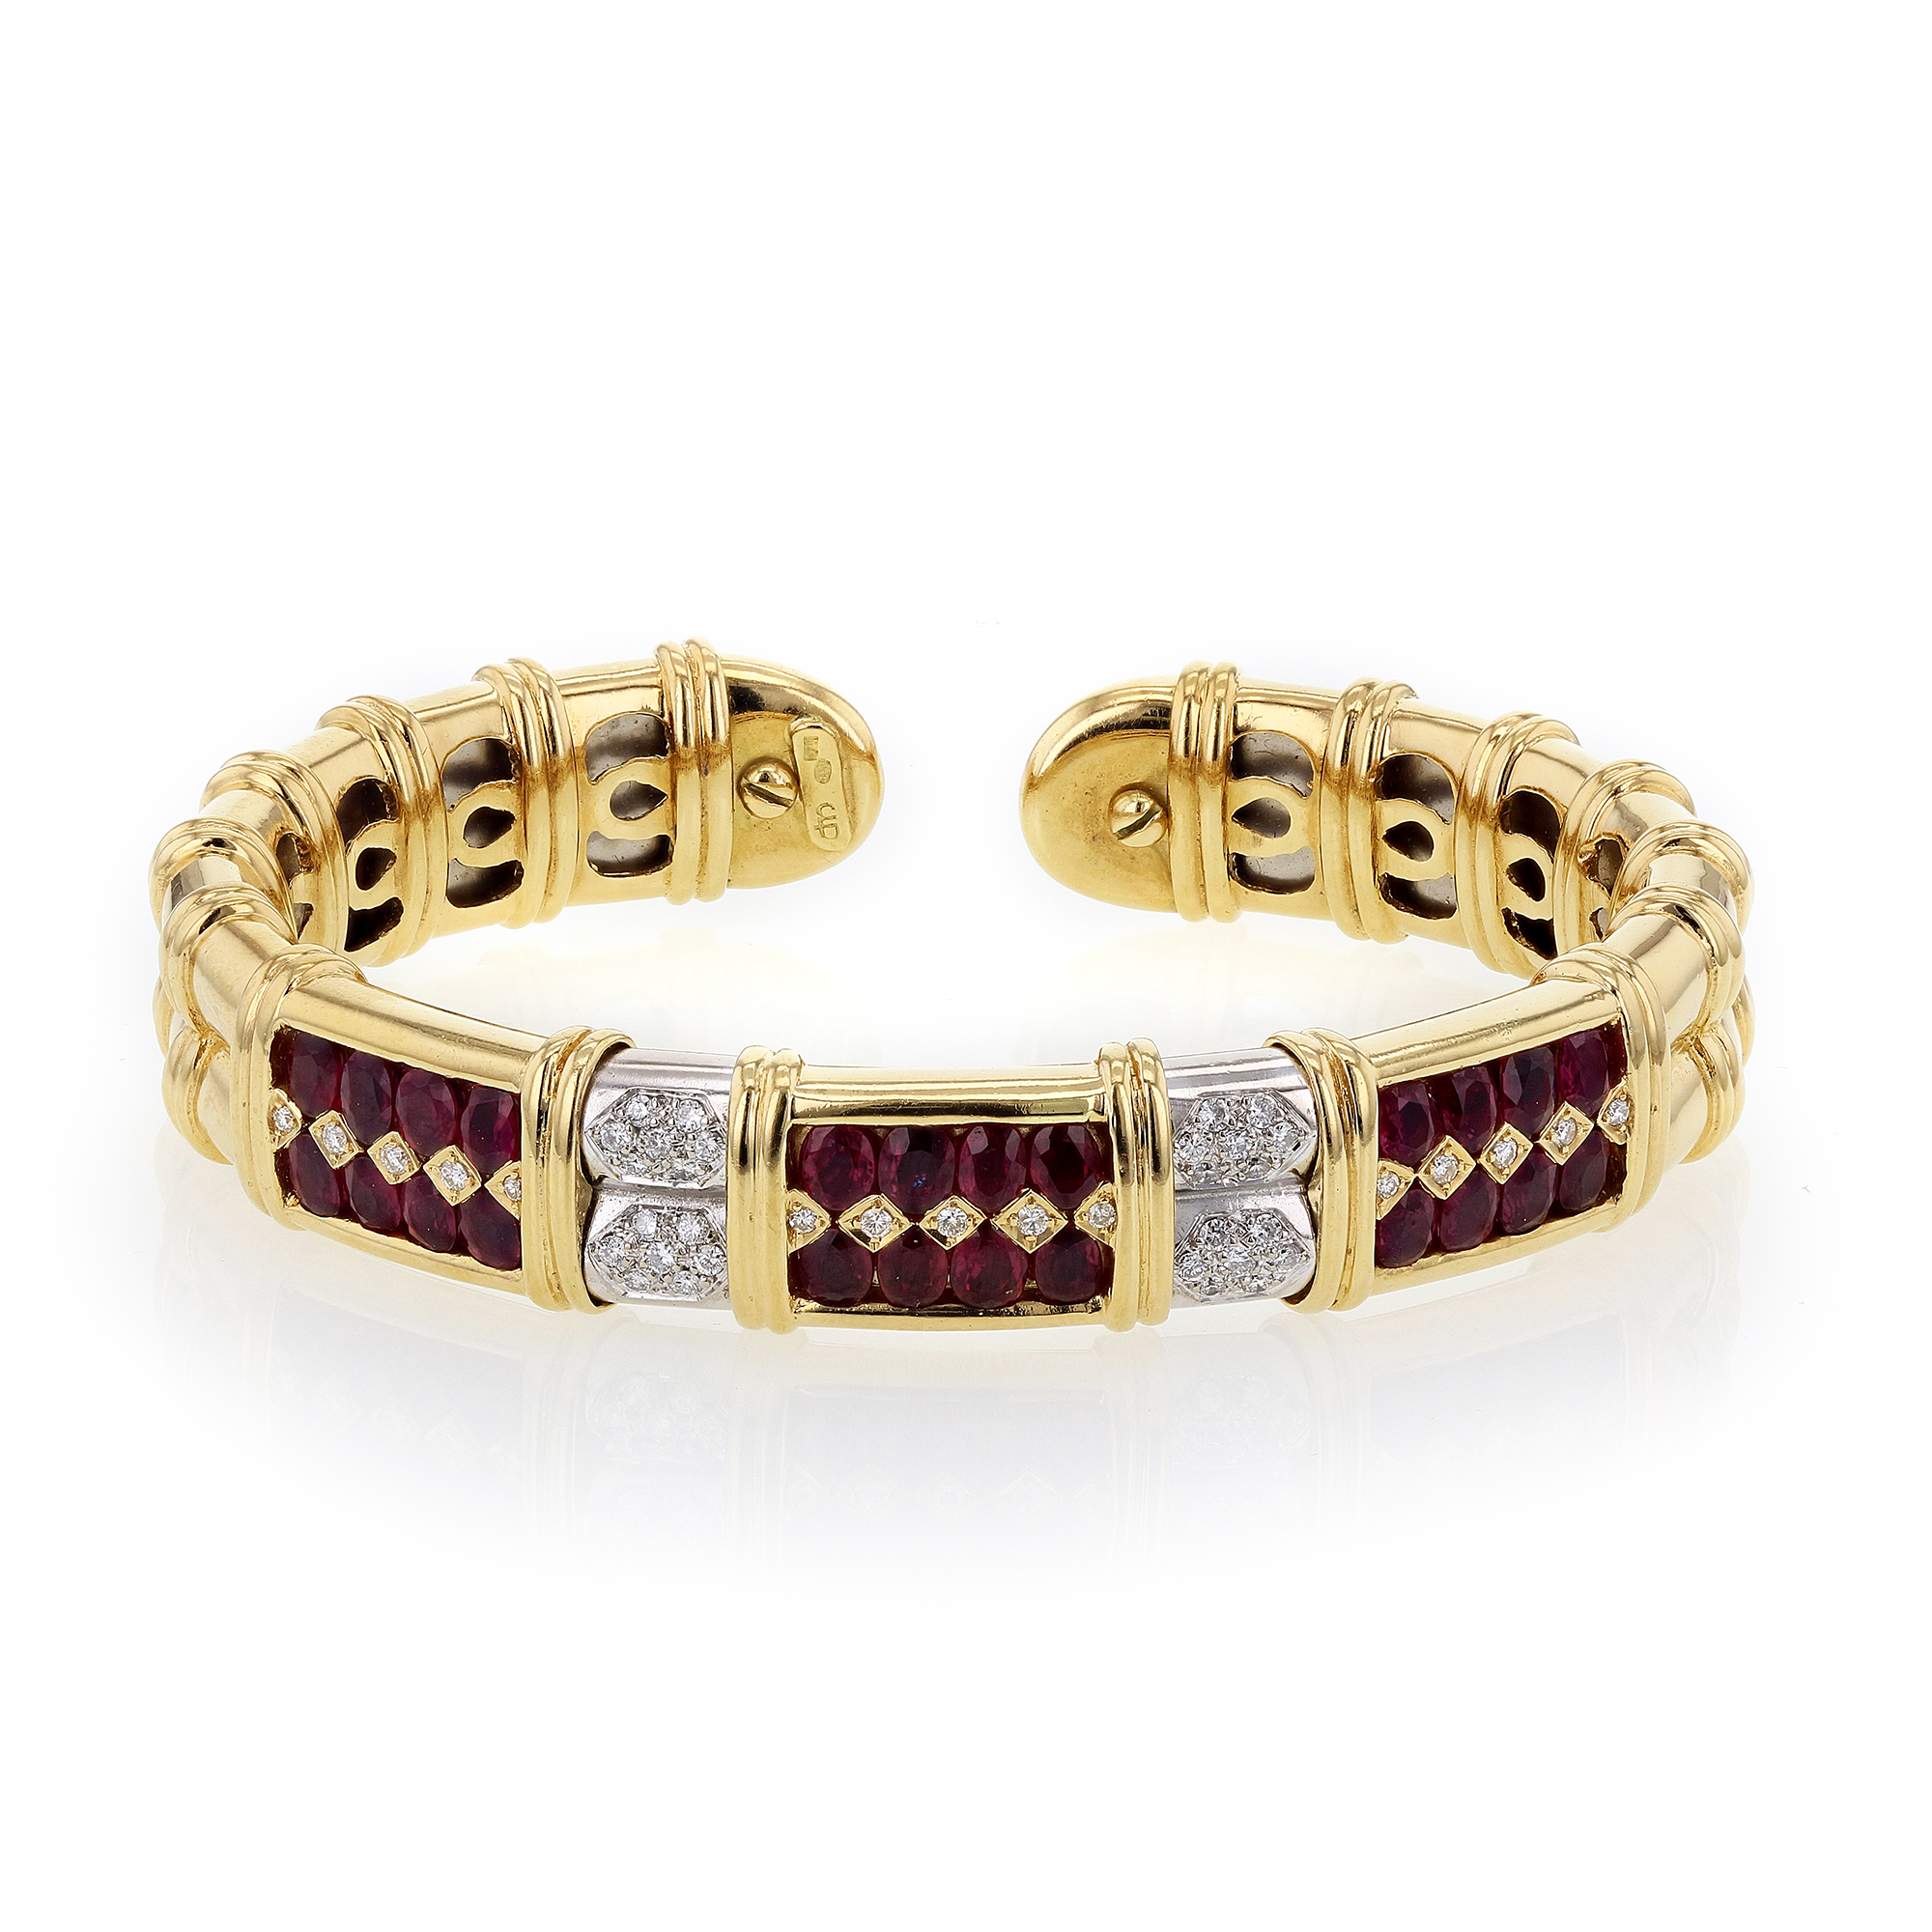 "Image of ""Sabbadini Gioielli 18K Yellow Gold with Ruby & Diamond Cuff Bangle"""